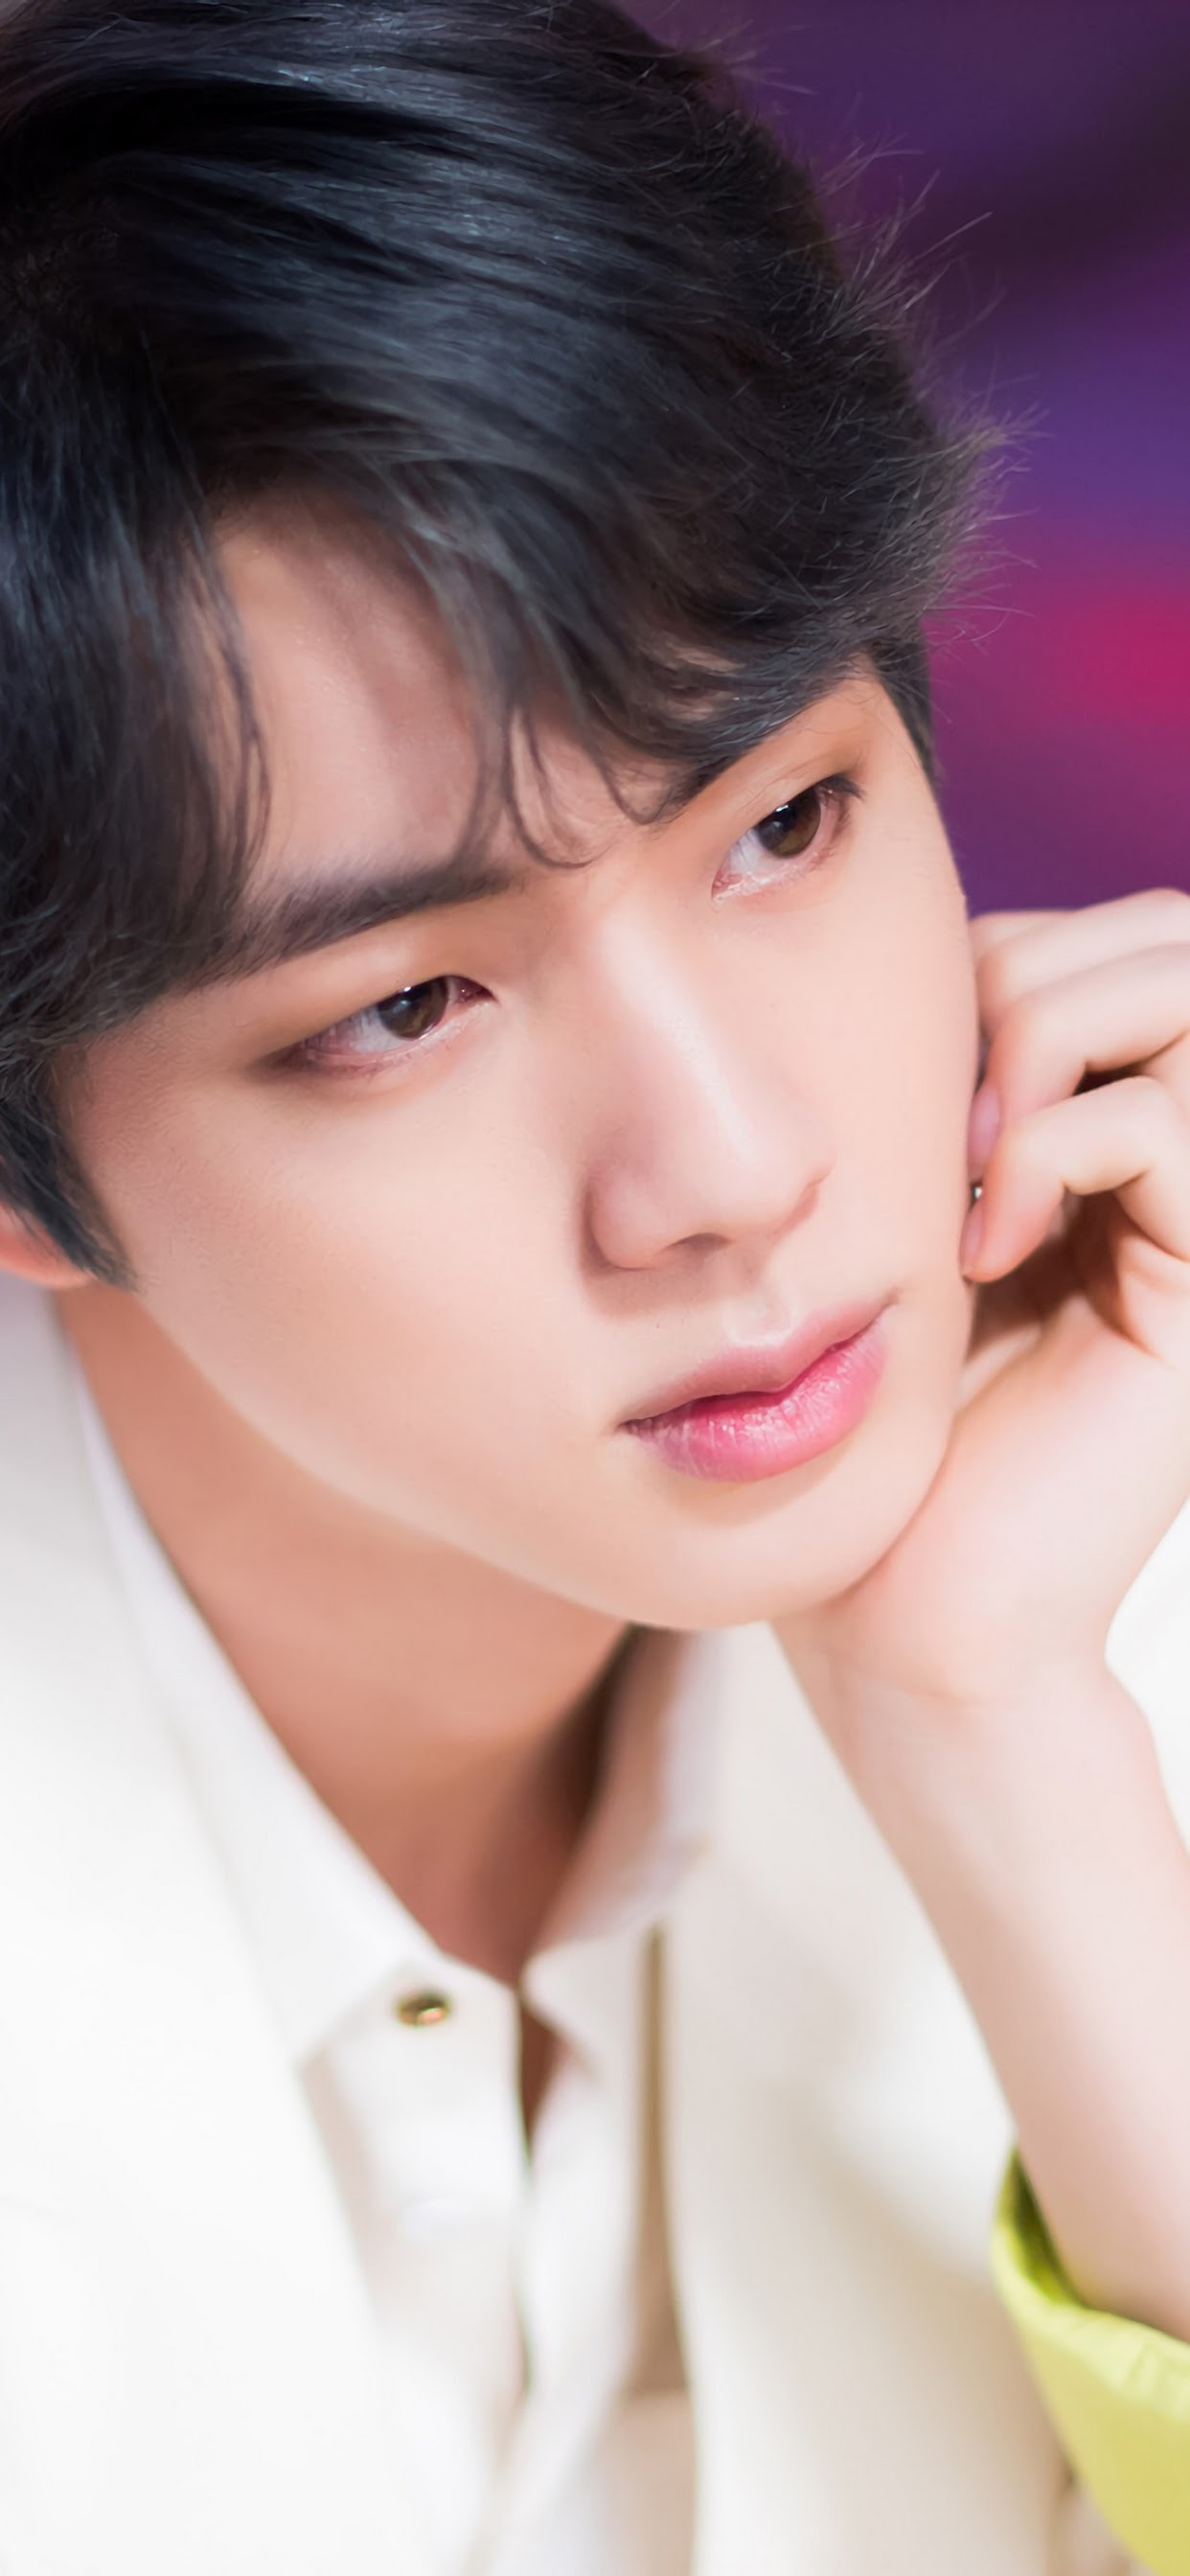 jin bts boy with luv uhdpaper.com 4K 113